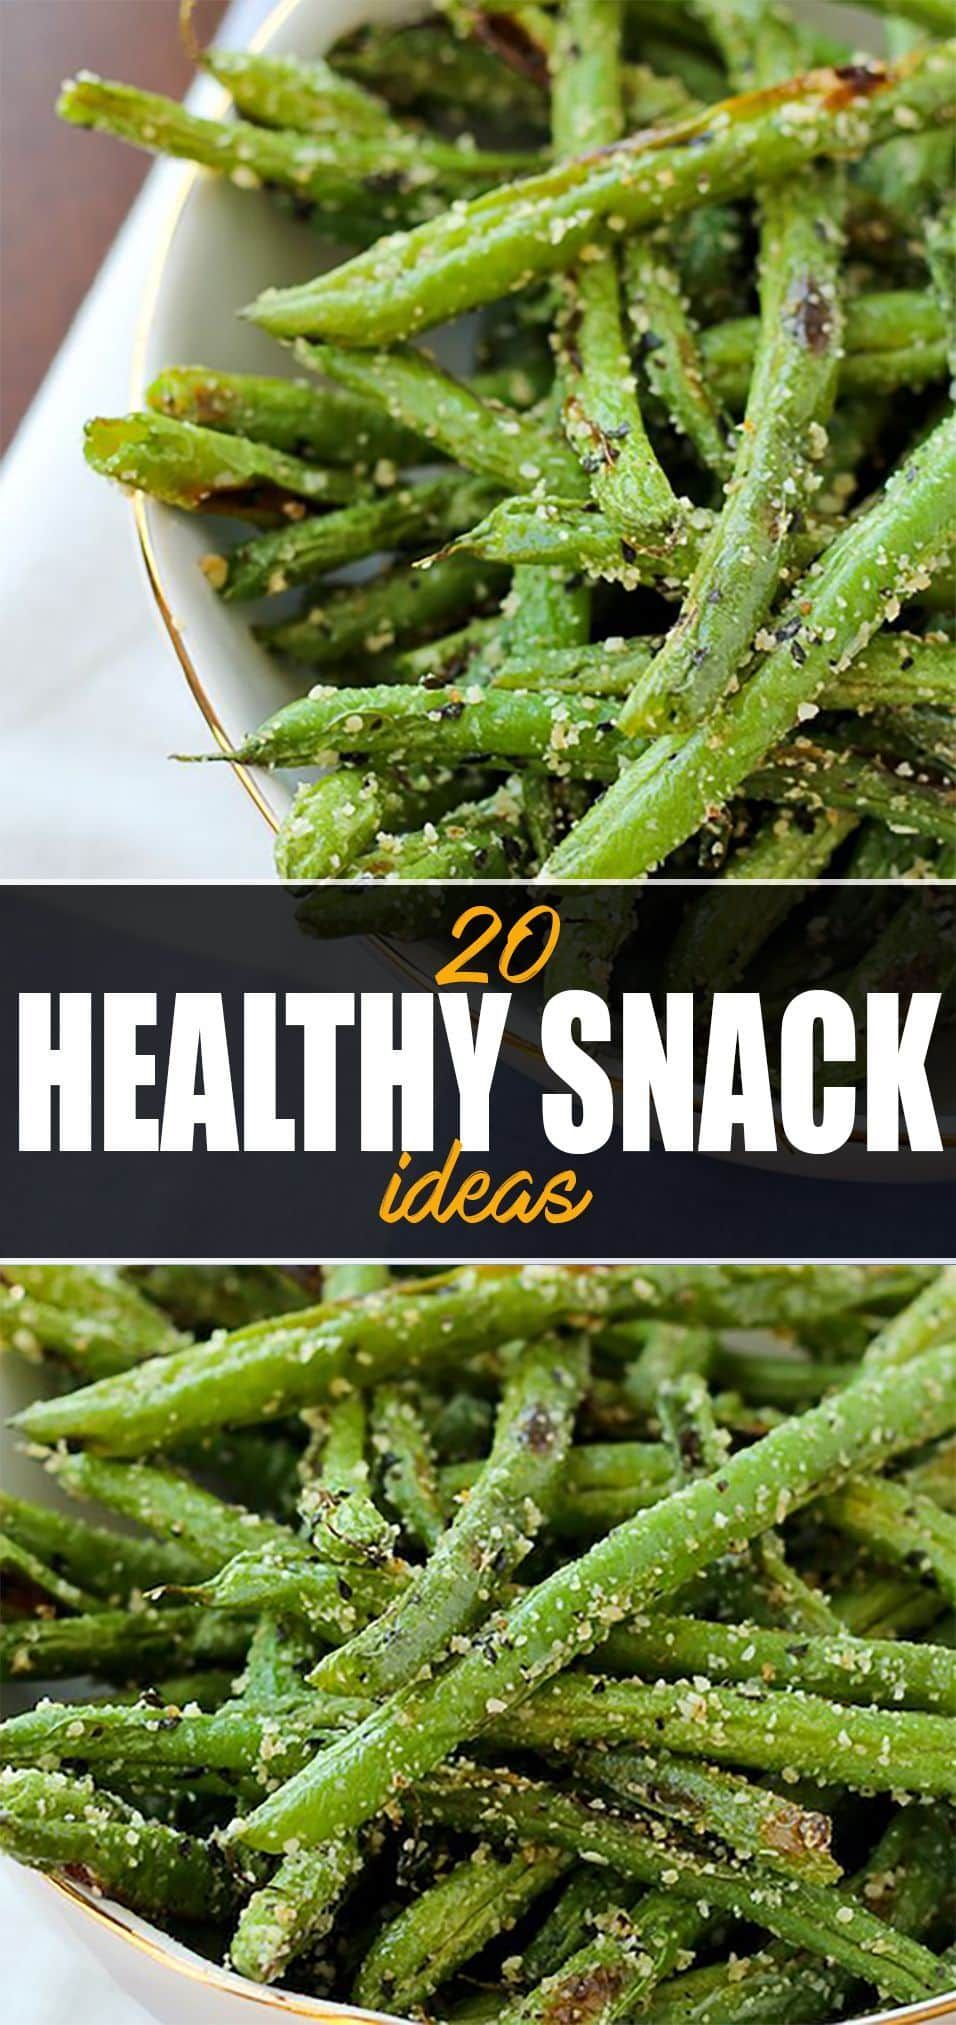 20 Easy Healthy Snack Ideas - The Best Snacks For Weight Loss - Page 2 of 3 - Fit Girl's Diary #easy #healthy #ideas #Loss #Page #snack #snacks #weight #healthycrockpots